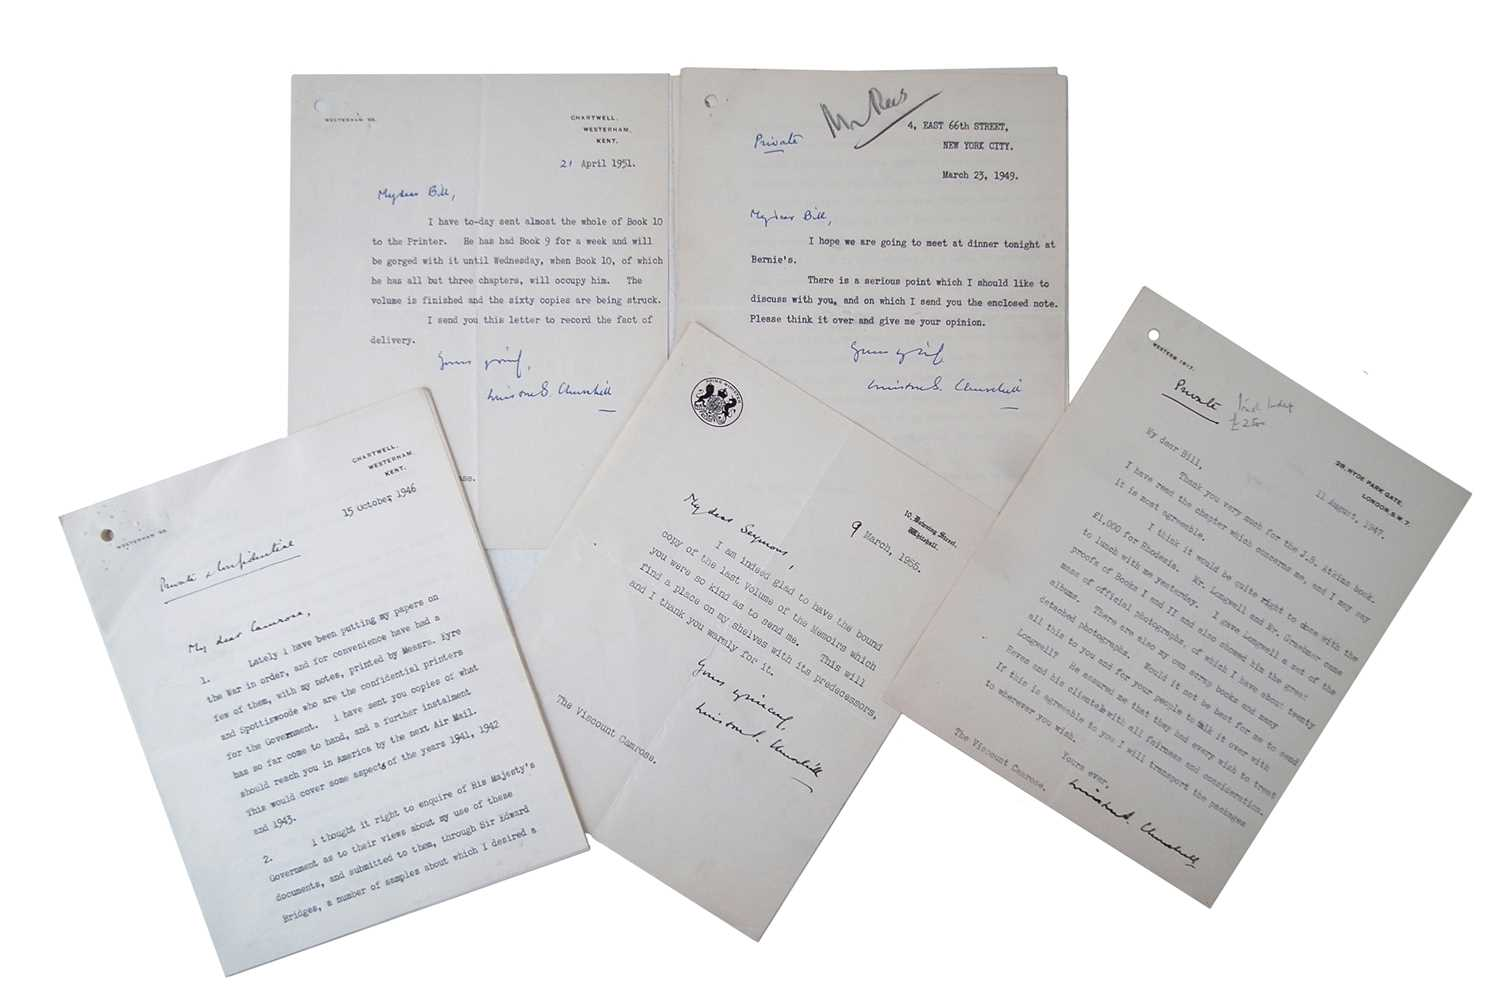 Winston Churchill album of autographed letters